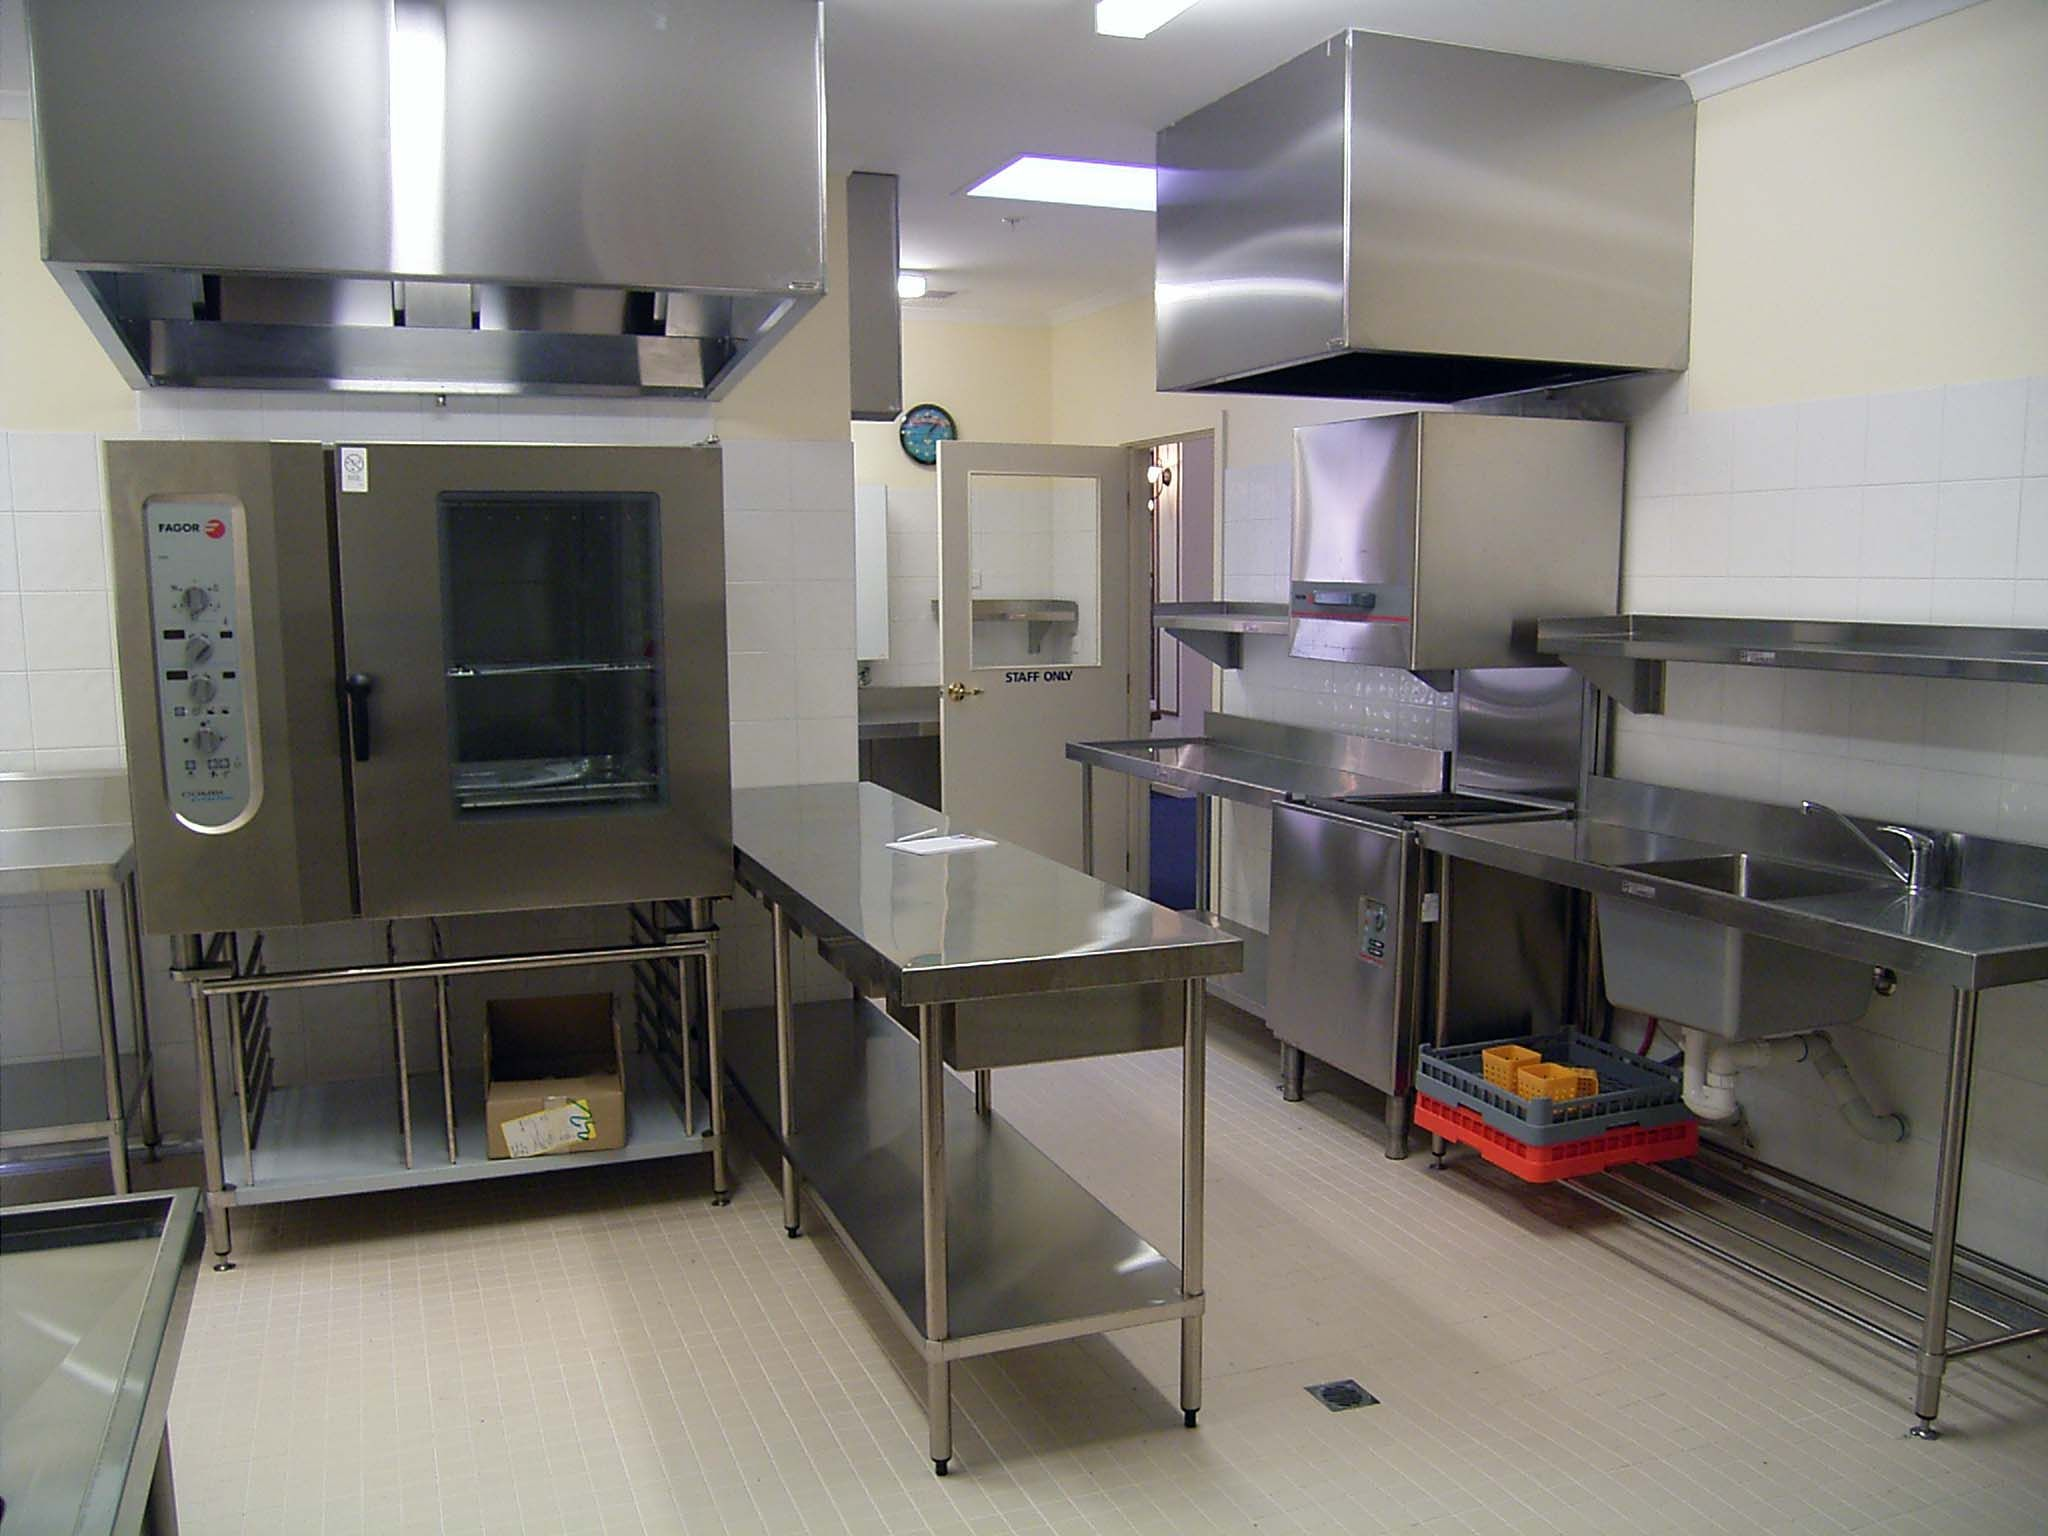 Commercial Kitchen Design Kitchen Design I Shape India for Small Space  Layout White cabinets Pictures Images Ideas 2015 Photos